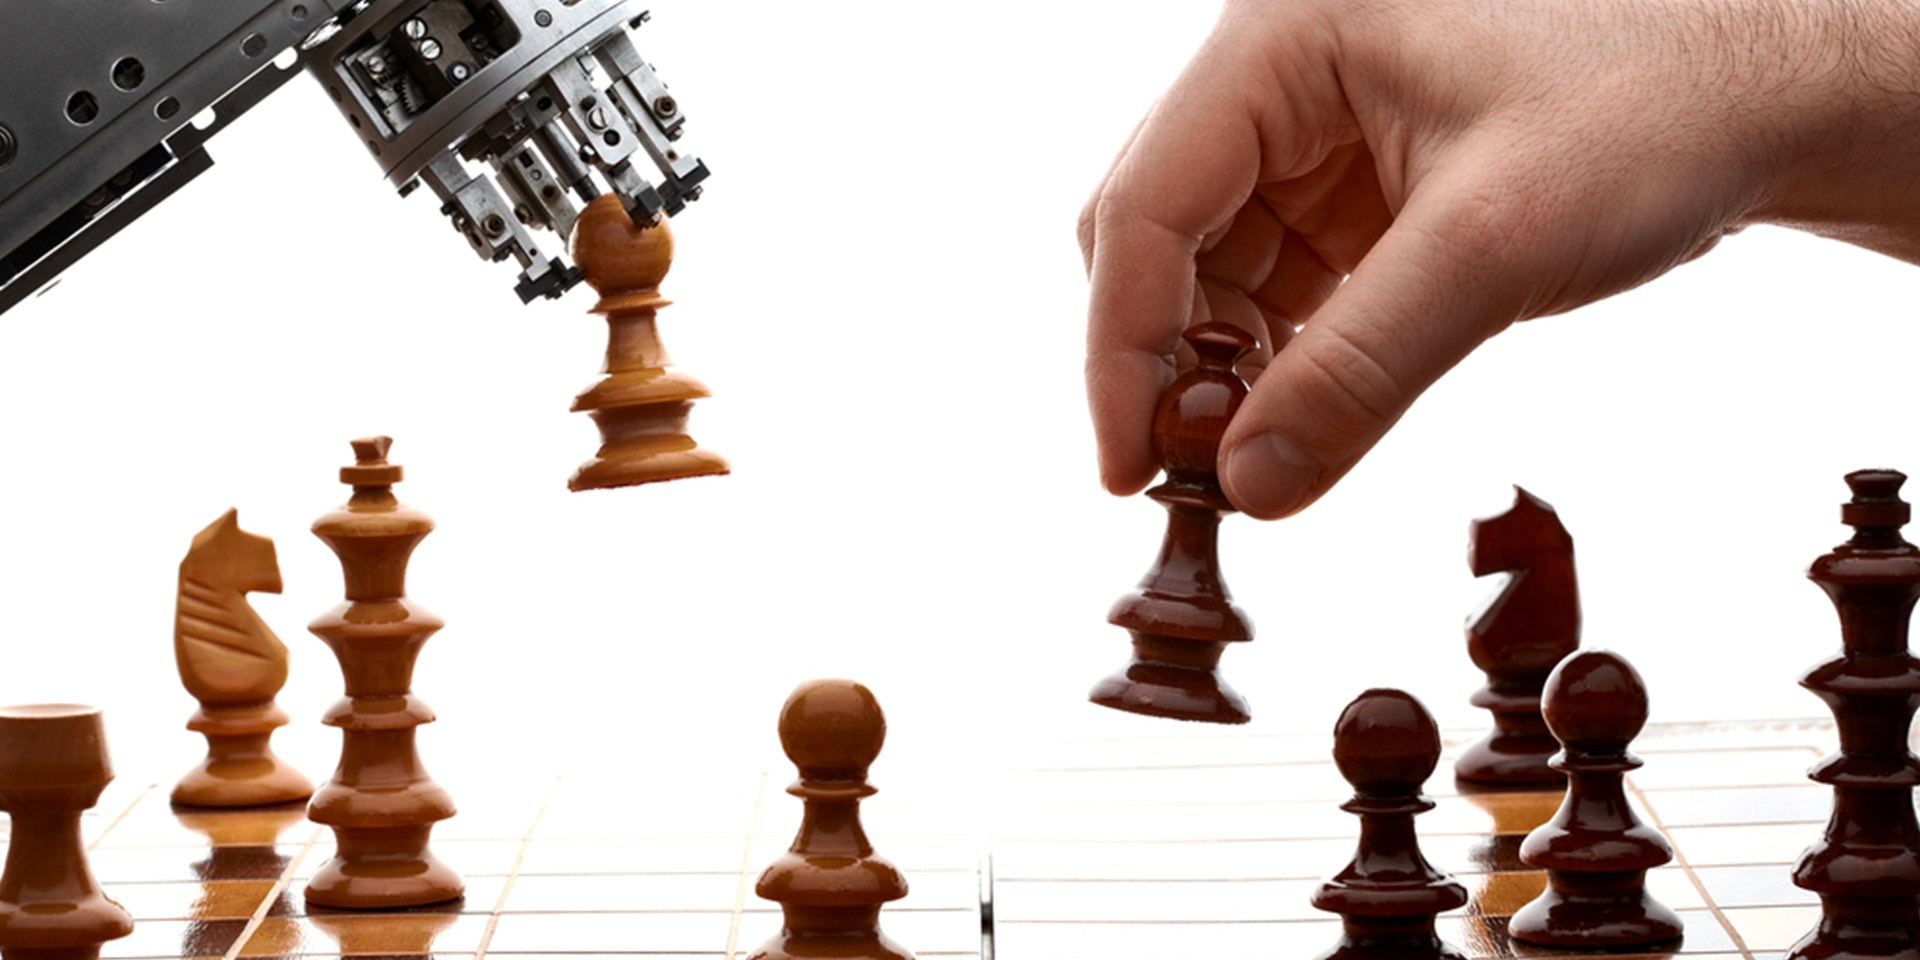 How to program a good and efficient AI?